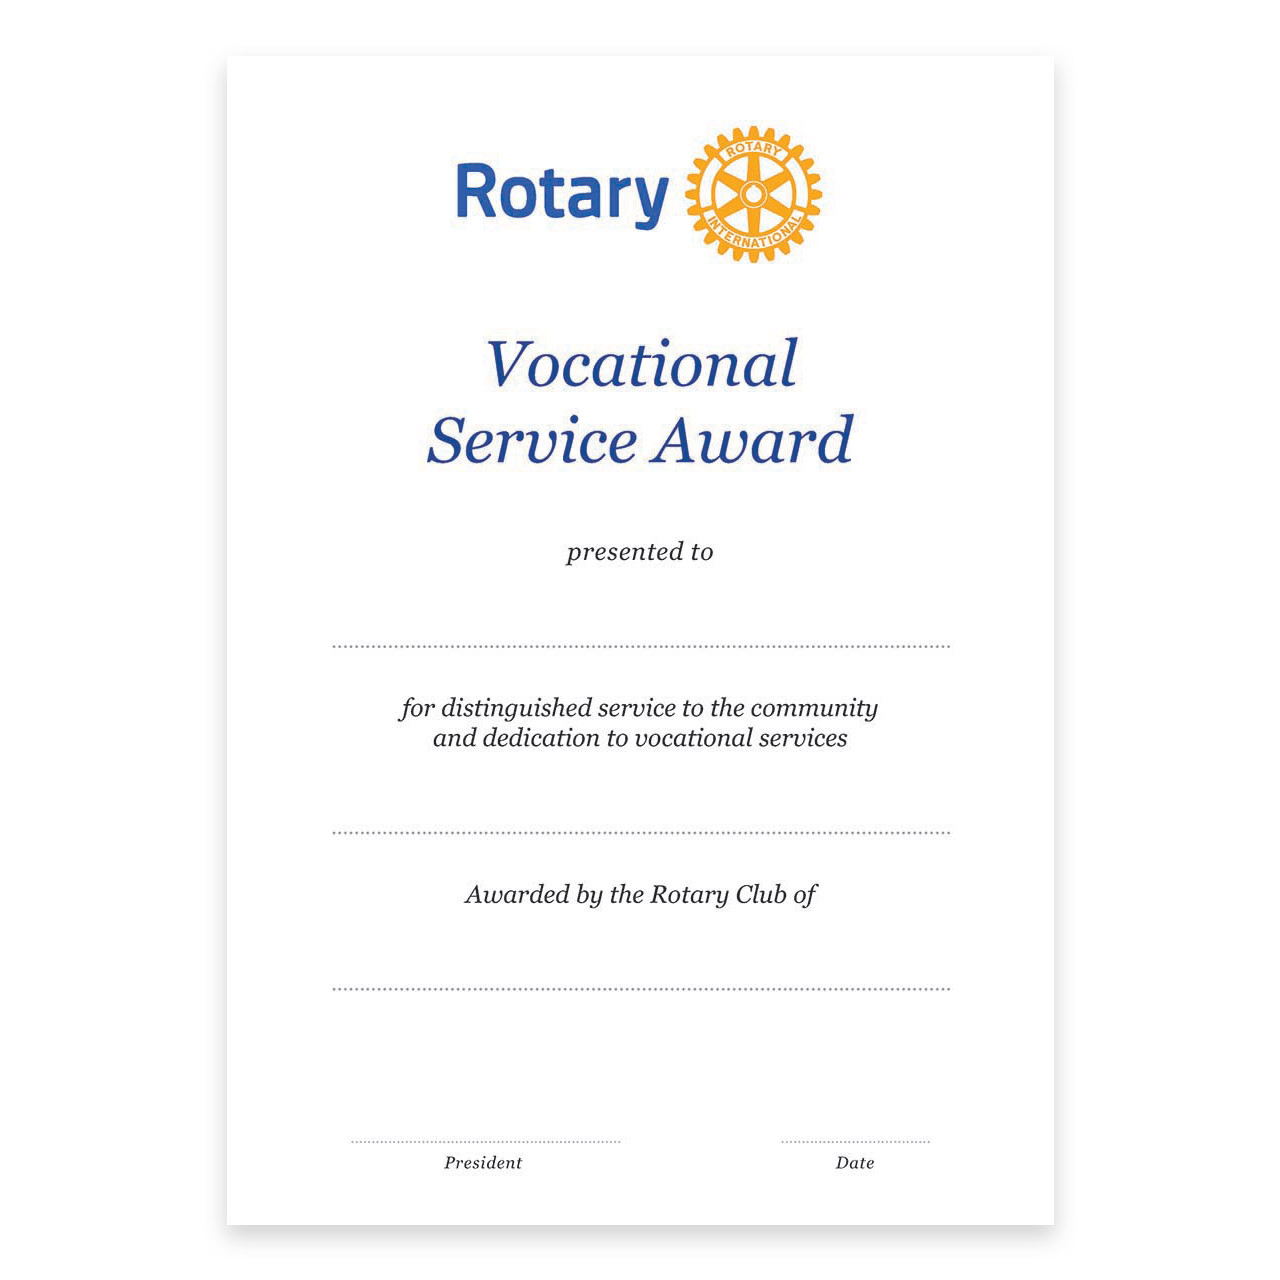 Vocational_Service_Award__45885.1521505838.1280.1280 Letter From The President Rotary Template on company letter template, executive letter template, wedding letter template, advocacy letter template, obamacare letter template, teacher letter template, leadership letter template, lawyer letter template, result letter template, committee letter template, management letter template, certified letter template, board of directors letter template, investor letter template, judge letter template, student enrollment letter template, formal apology letter format template, bank reference letter template, tutor letter template, buyer letter template,